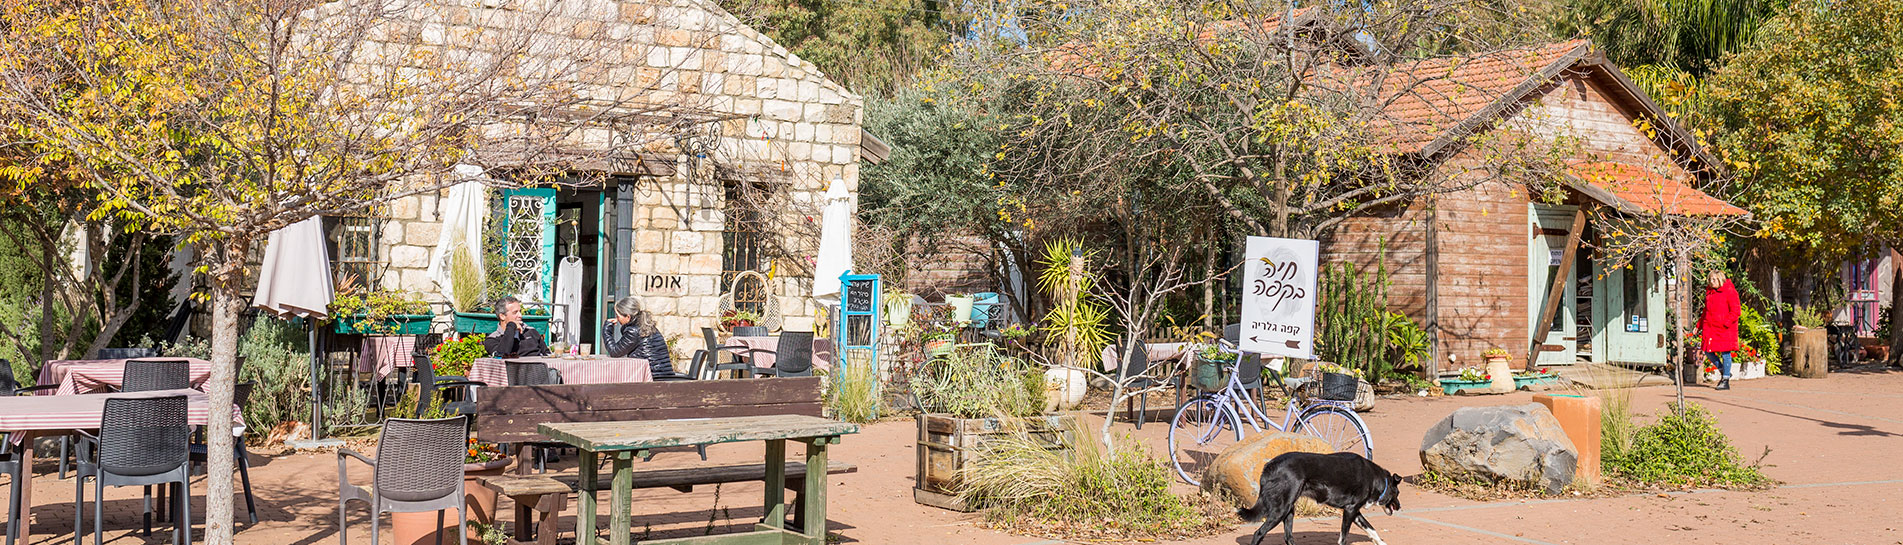 Inspiration tour: Artist Villages in Israel